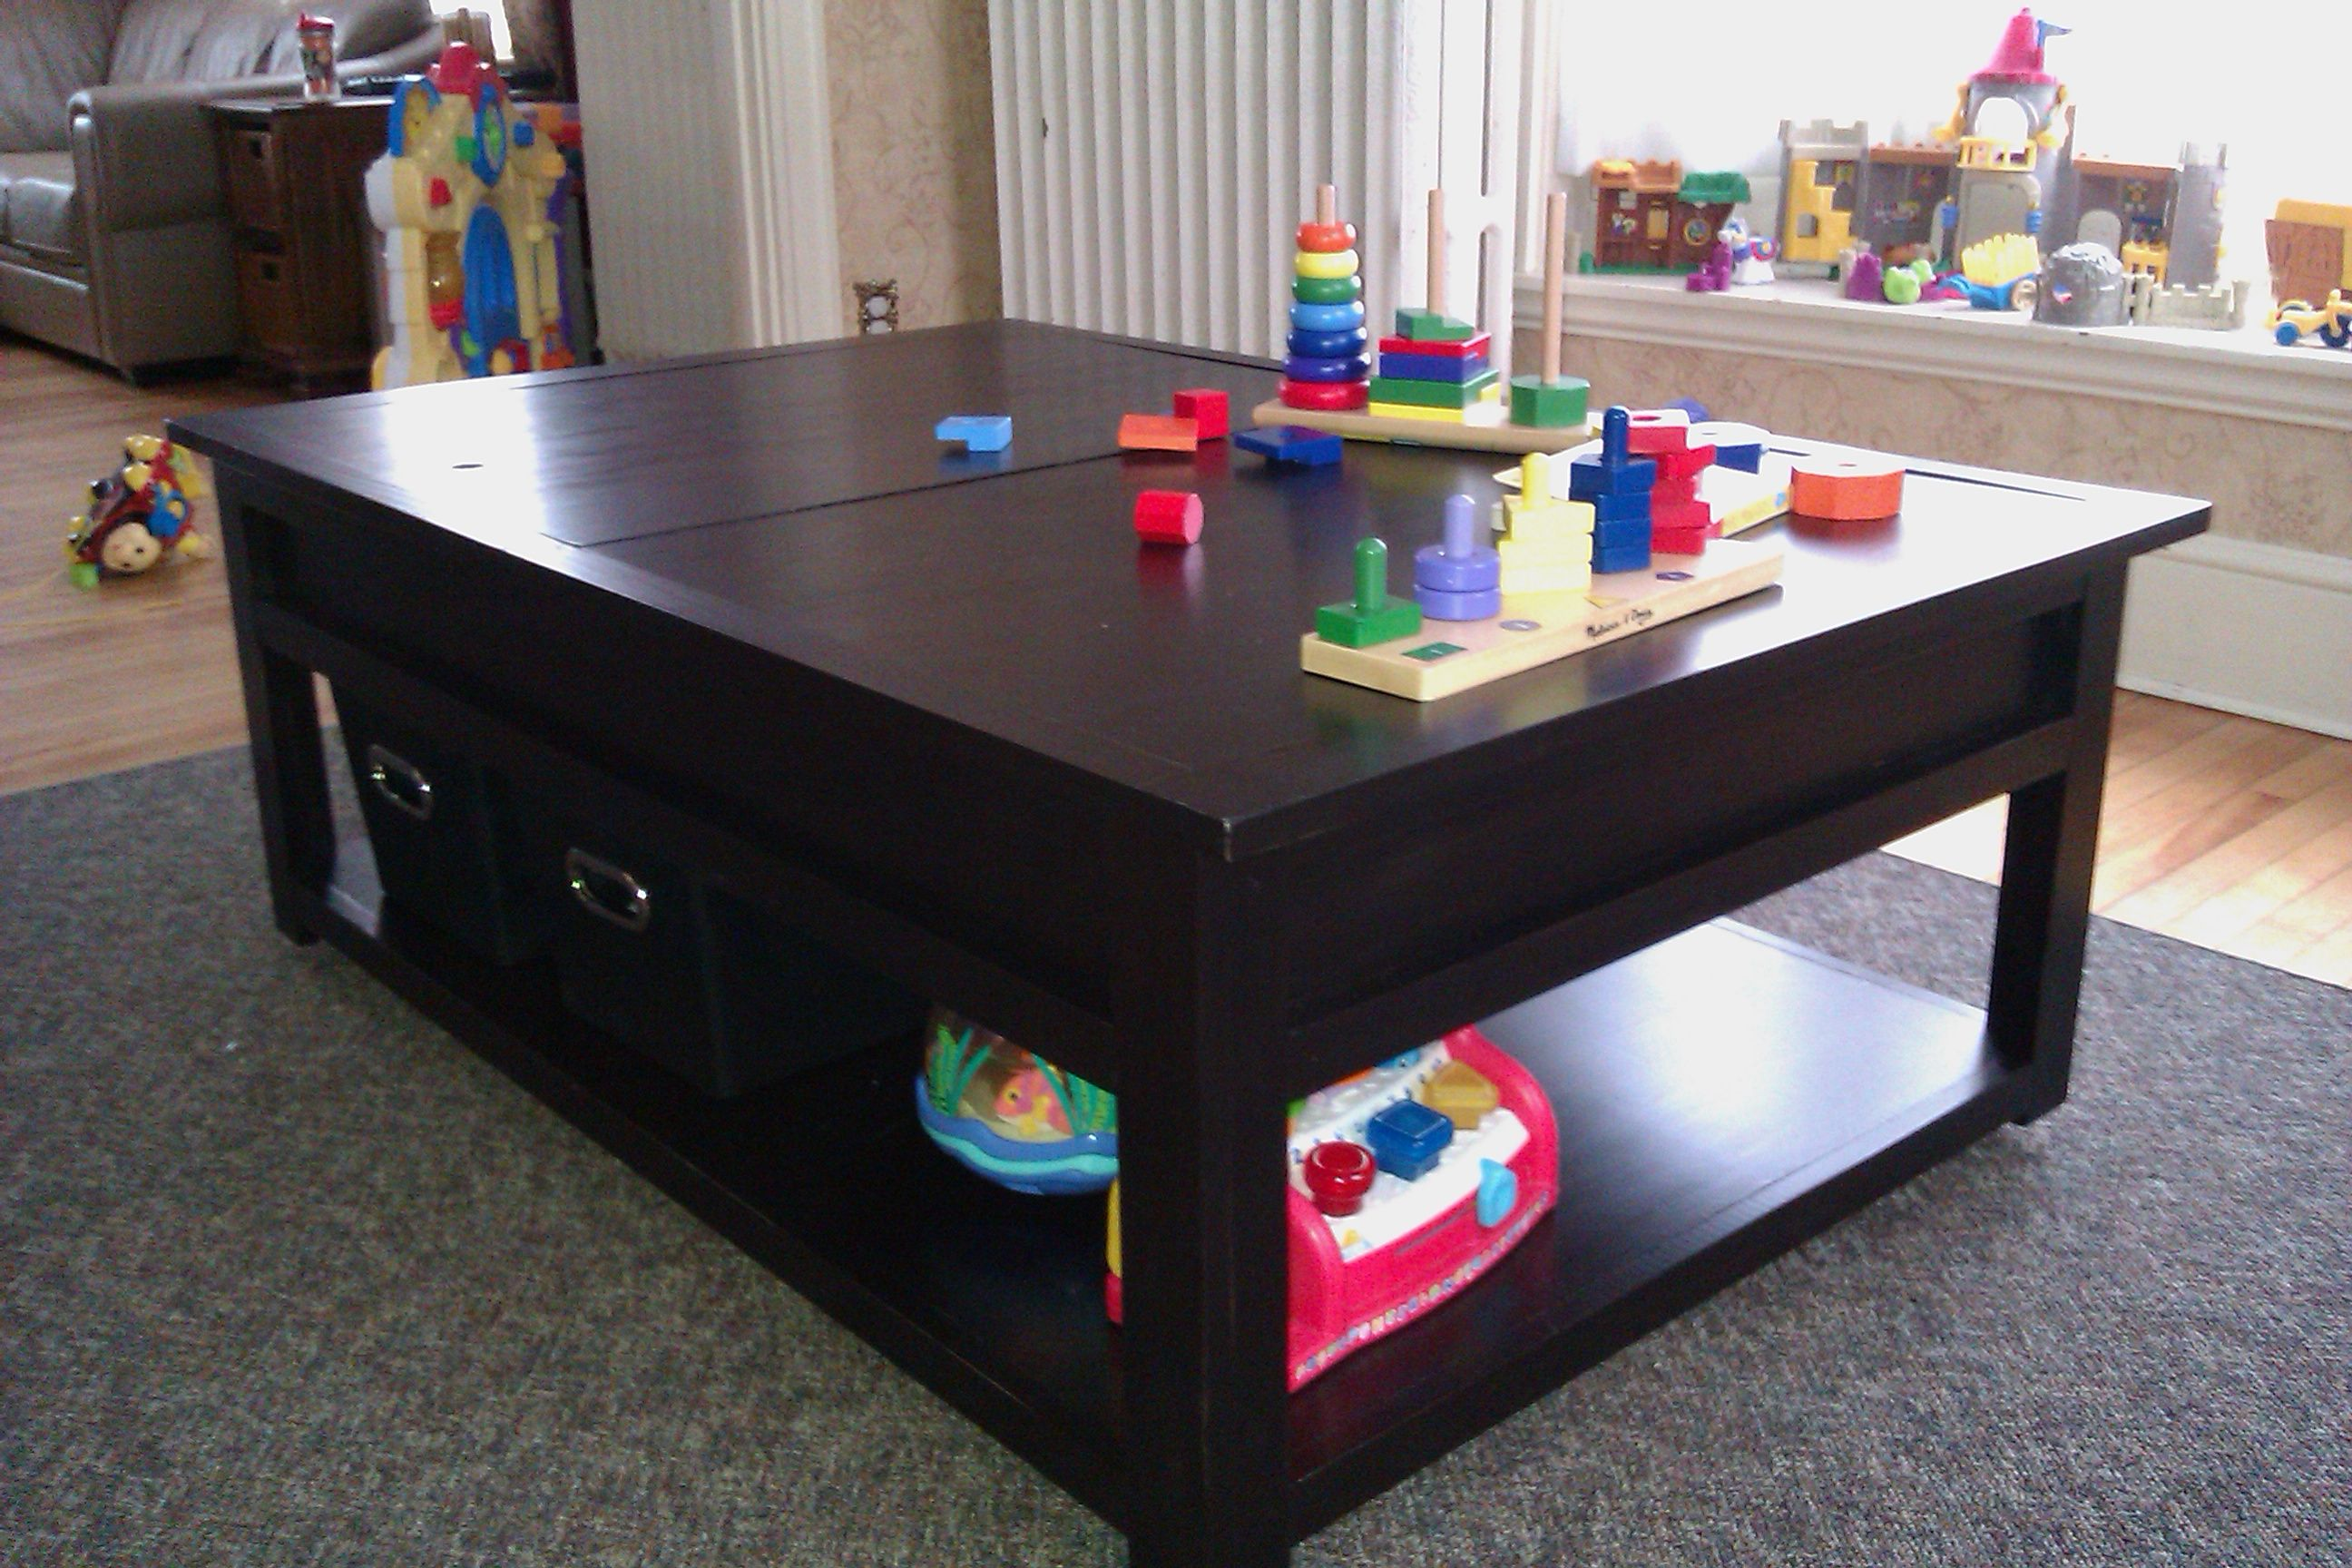 Train table do it yourself home projects from ana white kids train table do it yourself home projects from ana white solutioingenieria Choice Image